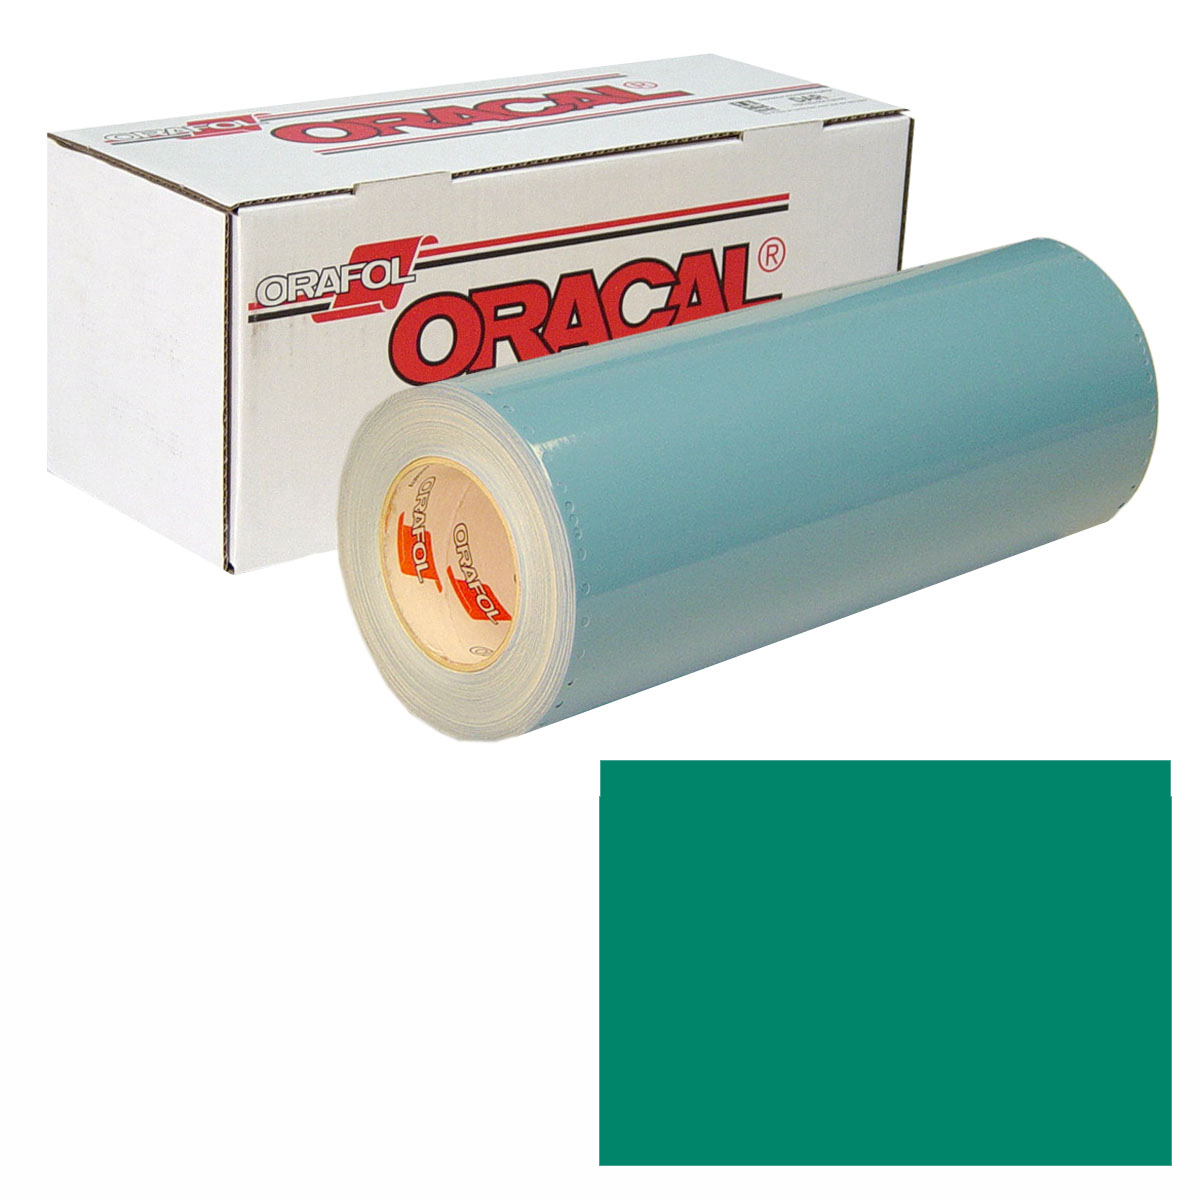 ORACAL 751 30In X 50Yd 607 Turquoise Green